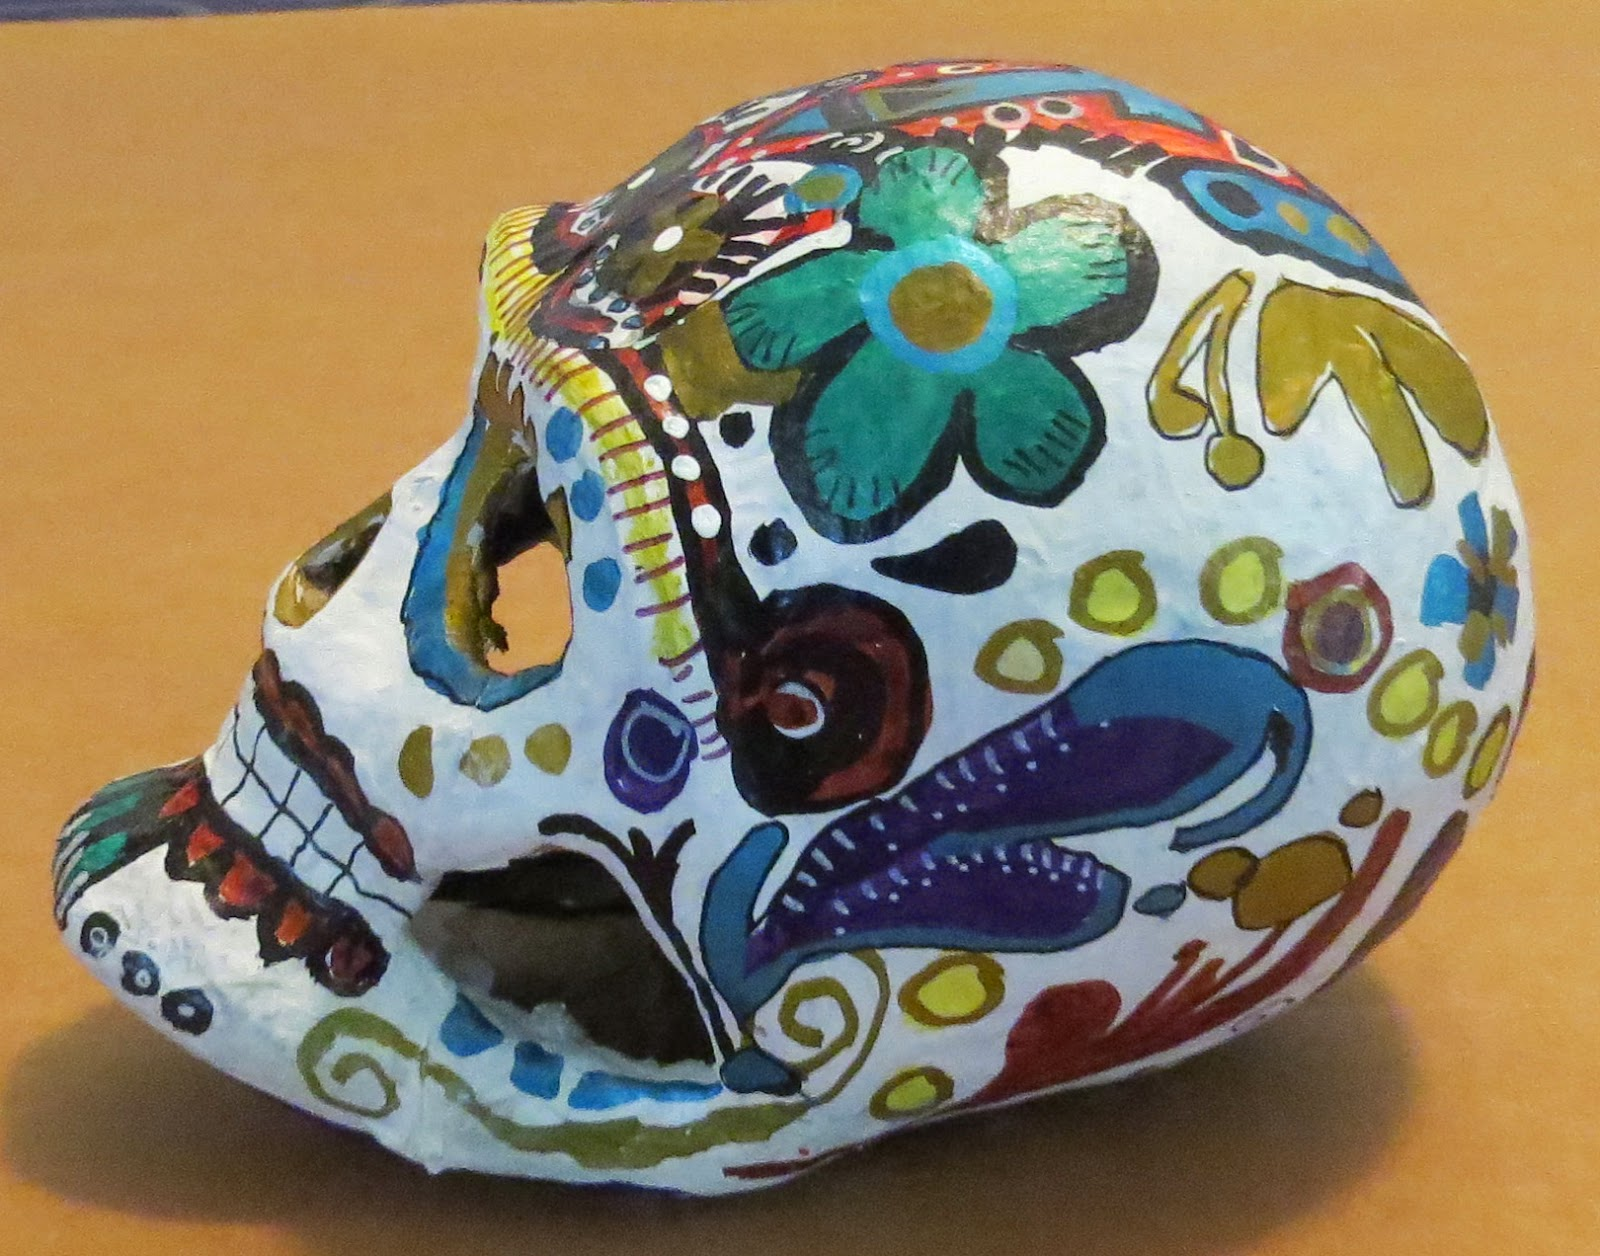 http://www.ebay.com/itm/Hand-Painted-paper-mache-day-of-the-dead-skull-Papier-Dia-de-lo-muertos-/261594043912?ssPageName=STRK:MESE:IT